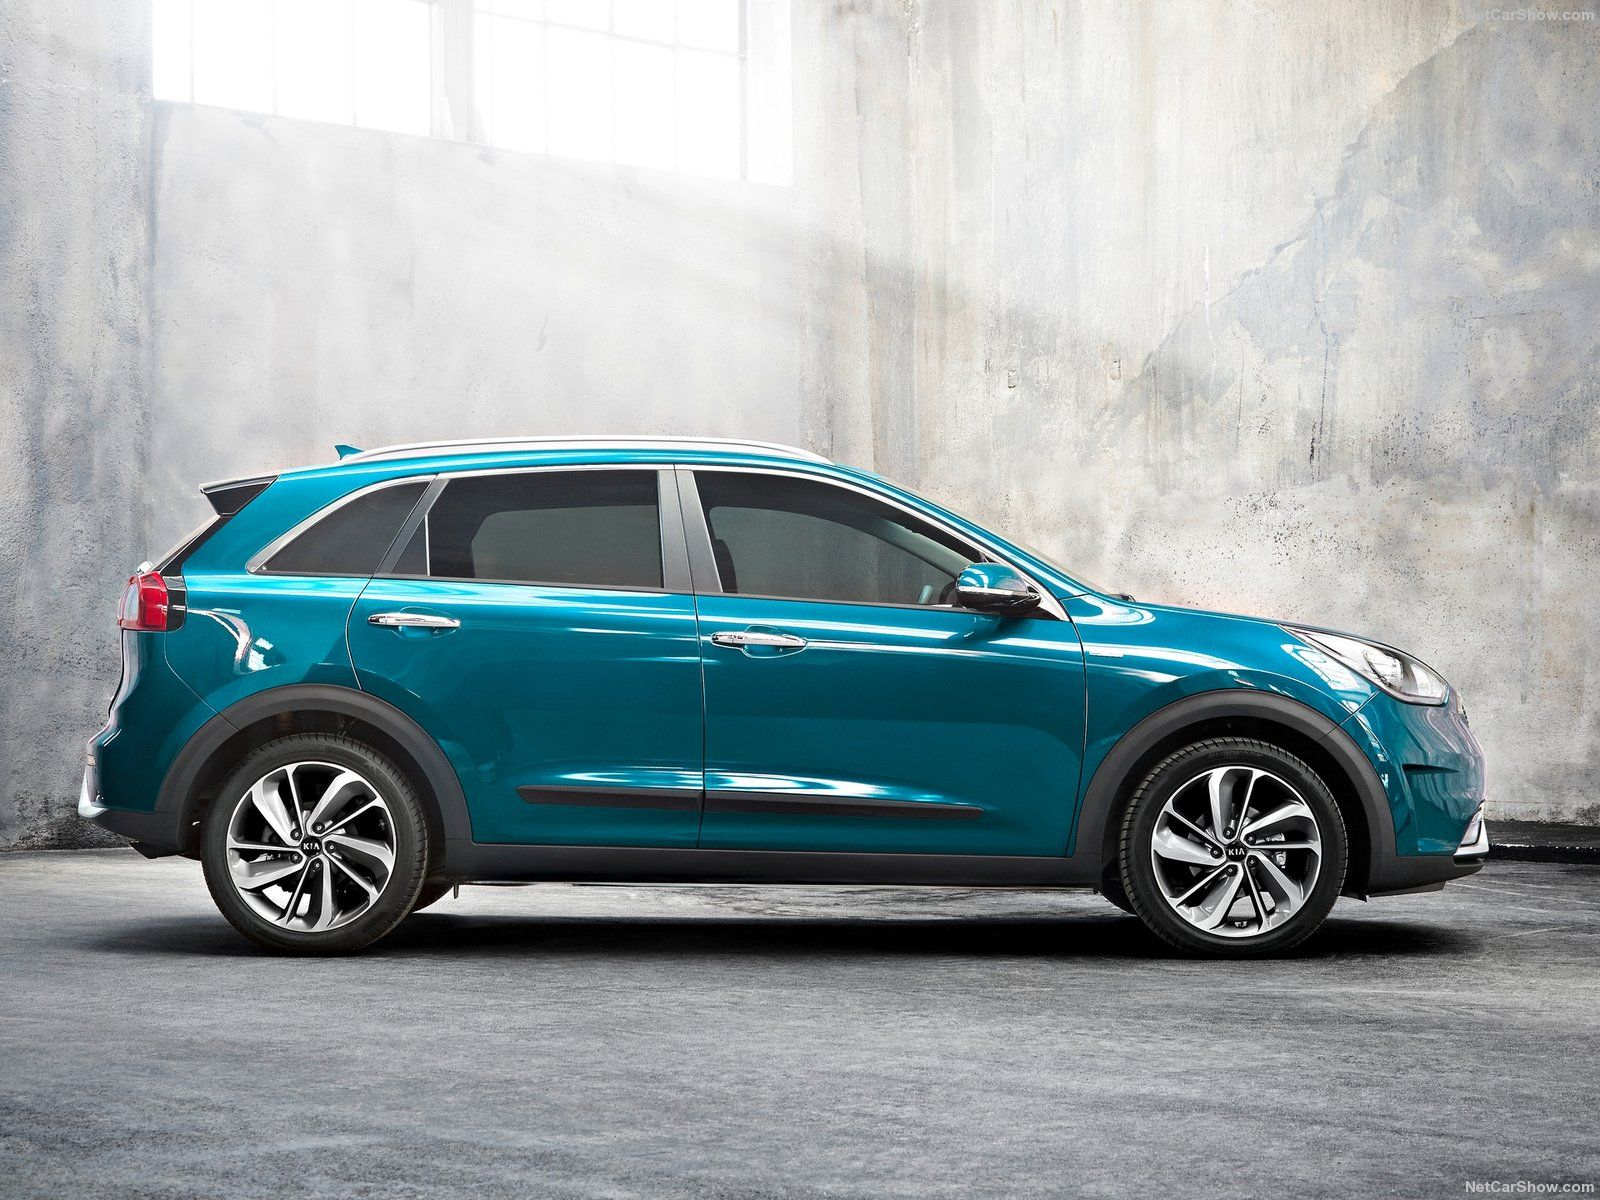 2017 Kia Niro Eu Version Kia Hybrid Car Kia 2017